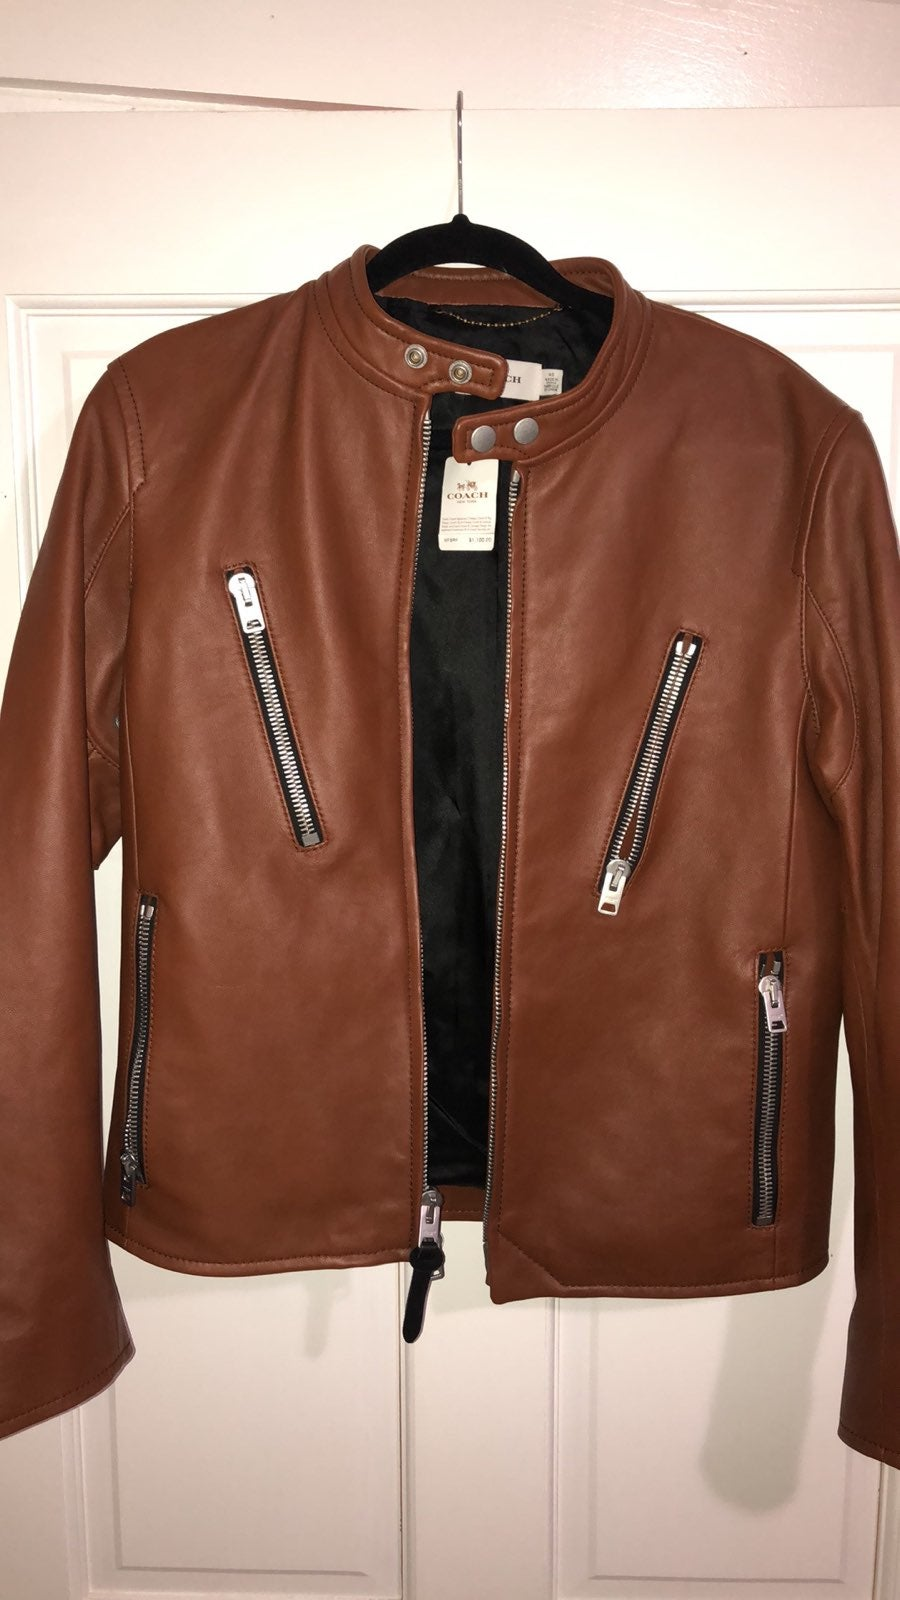 COACH Men's Racer Fawn Brown Leather